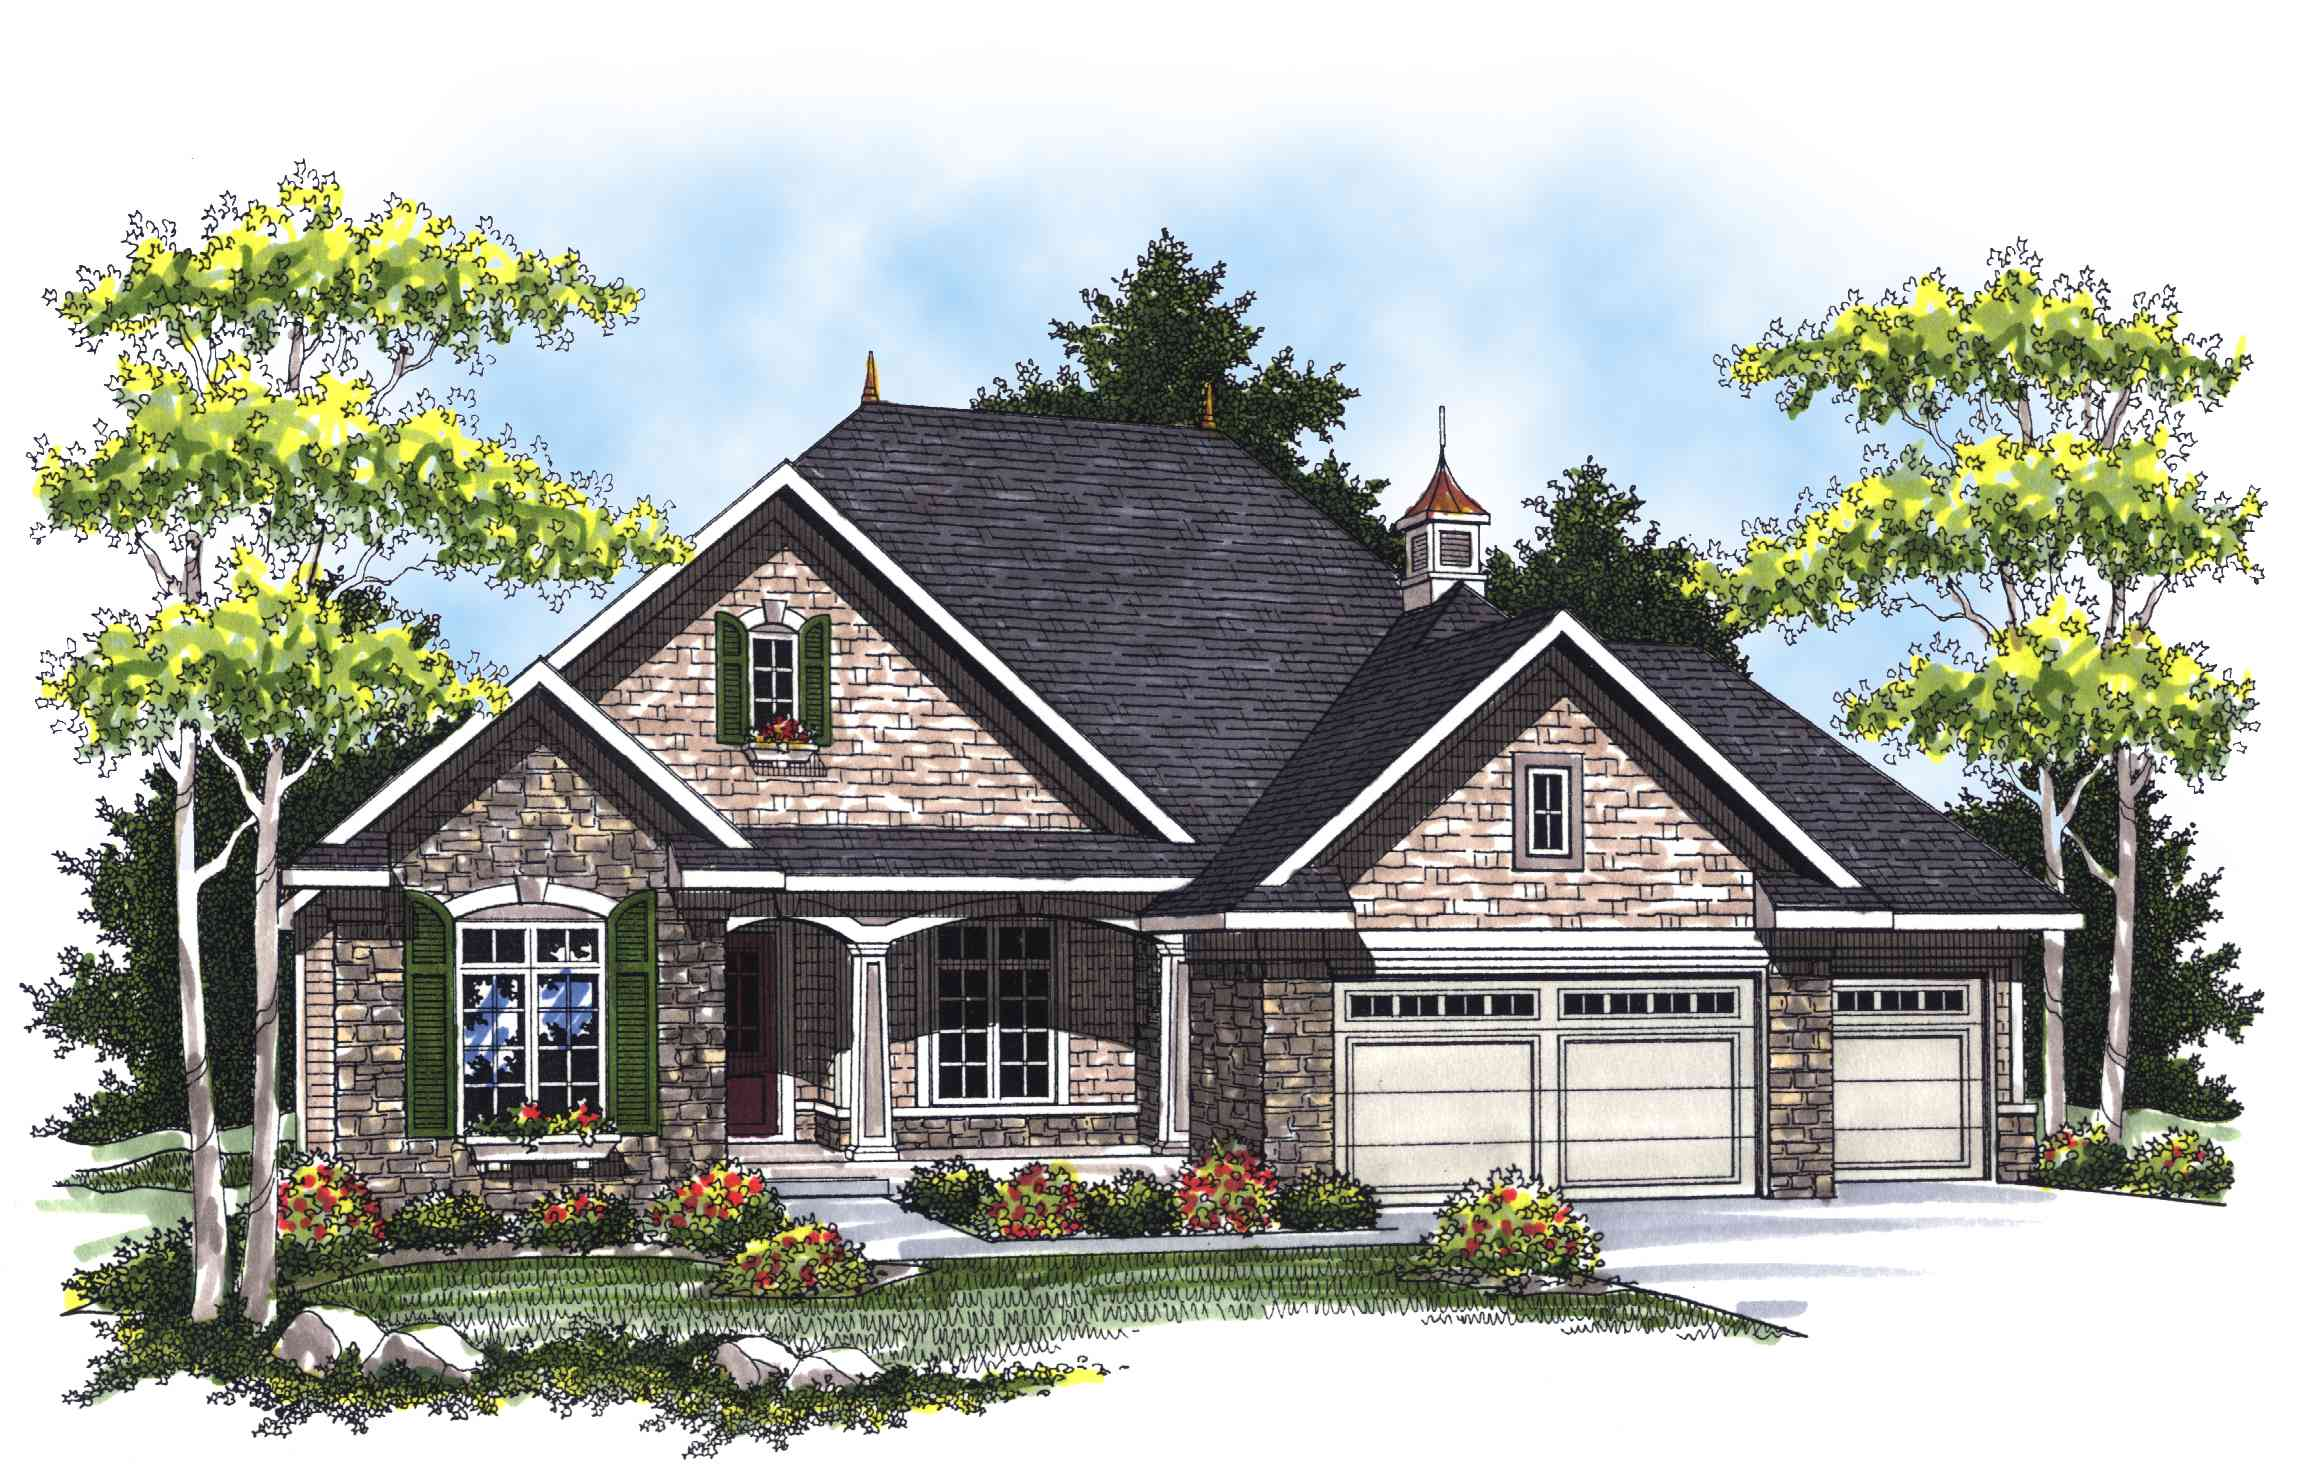 Home Design Plans: Country French Ranch Home Plan - 89265AH